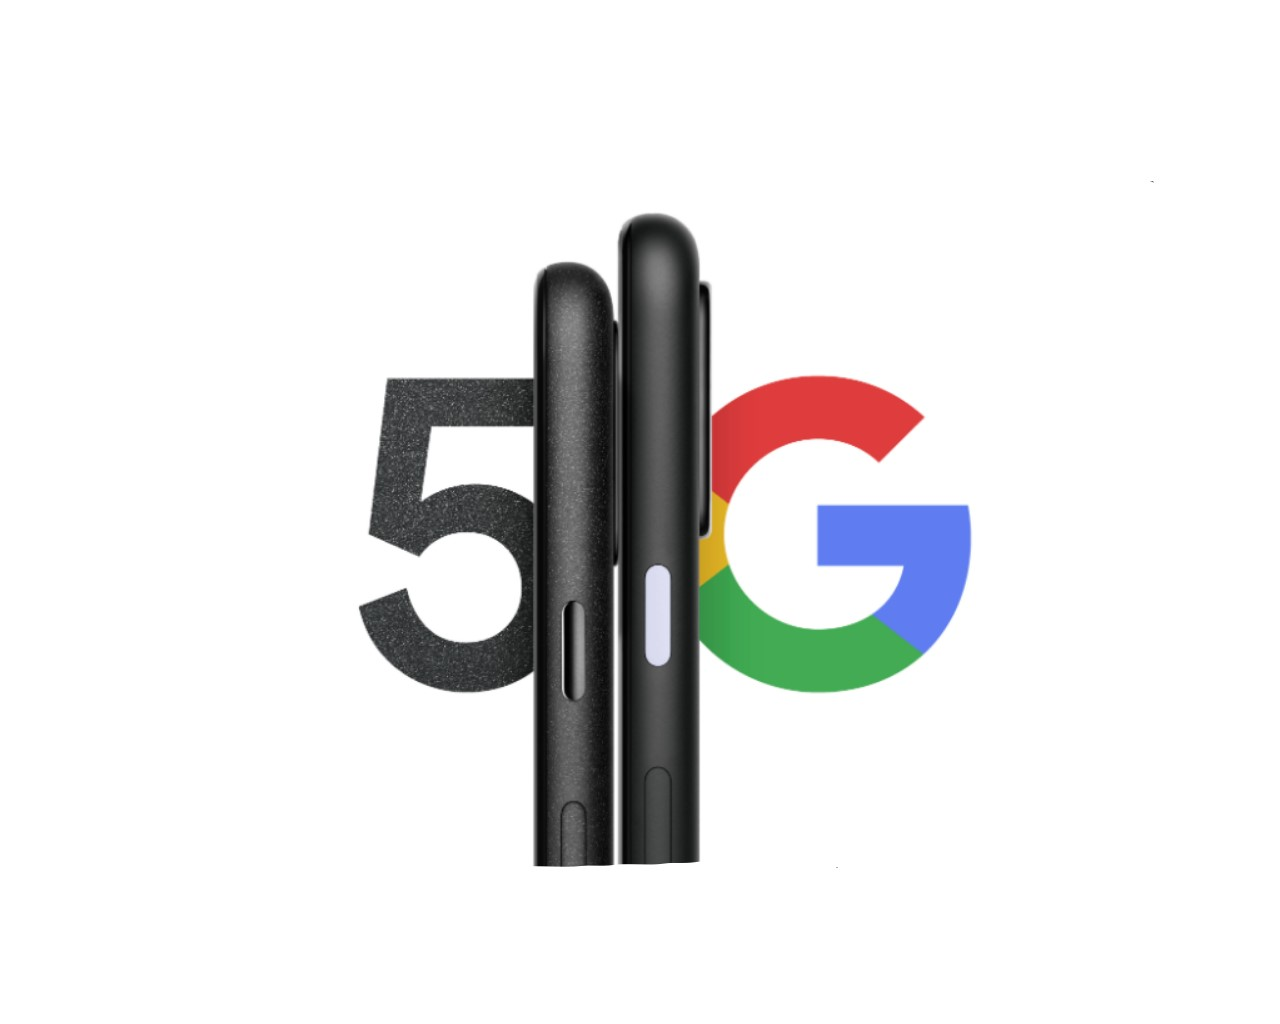 Google Official blog reveals the launch date of the Pixel 5